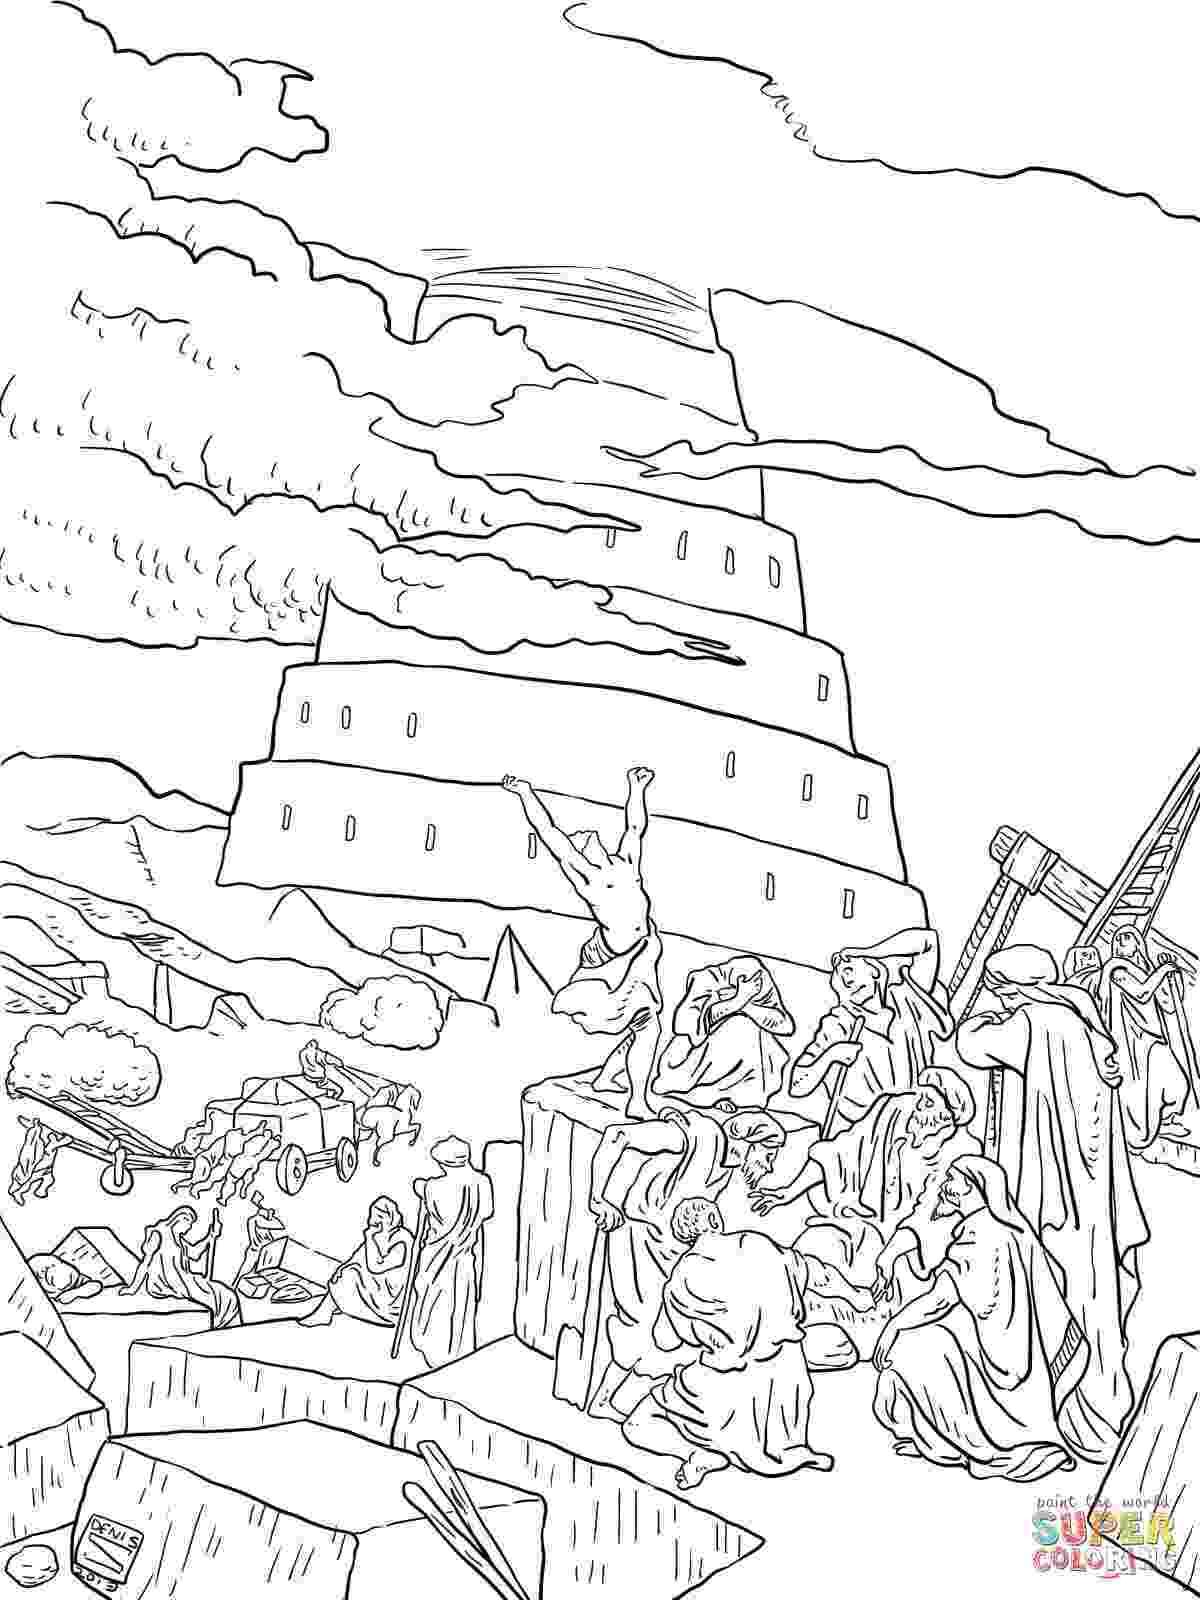 tower of babel coloring pages for kids tower of babel coloring pages for kids sketch coloring page tower coloring babel kids pages for of